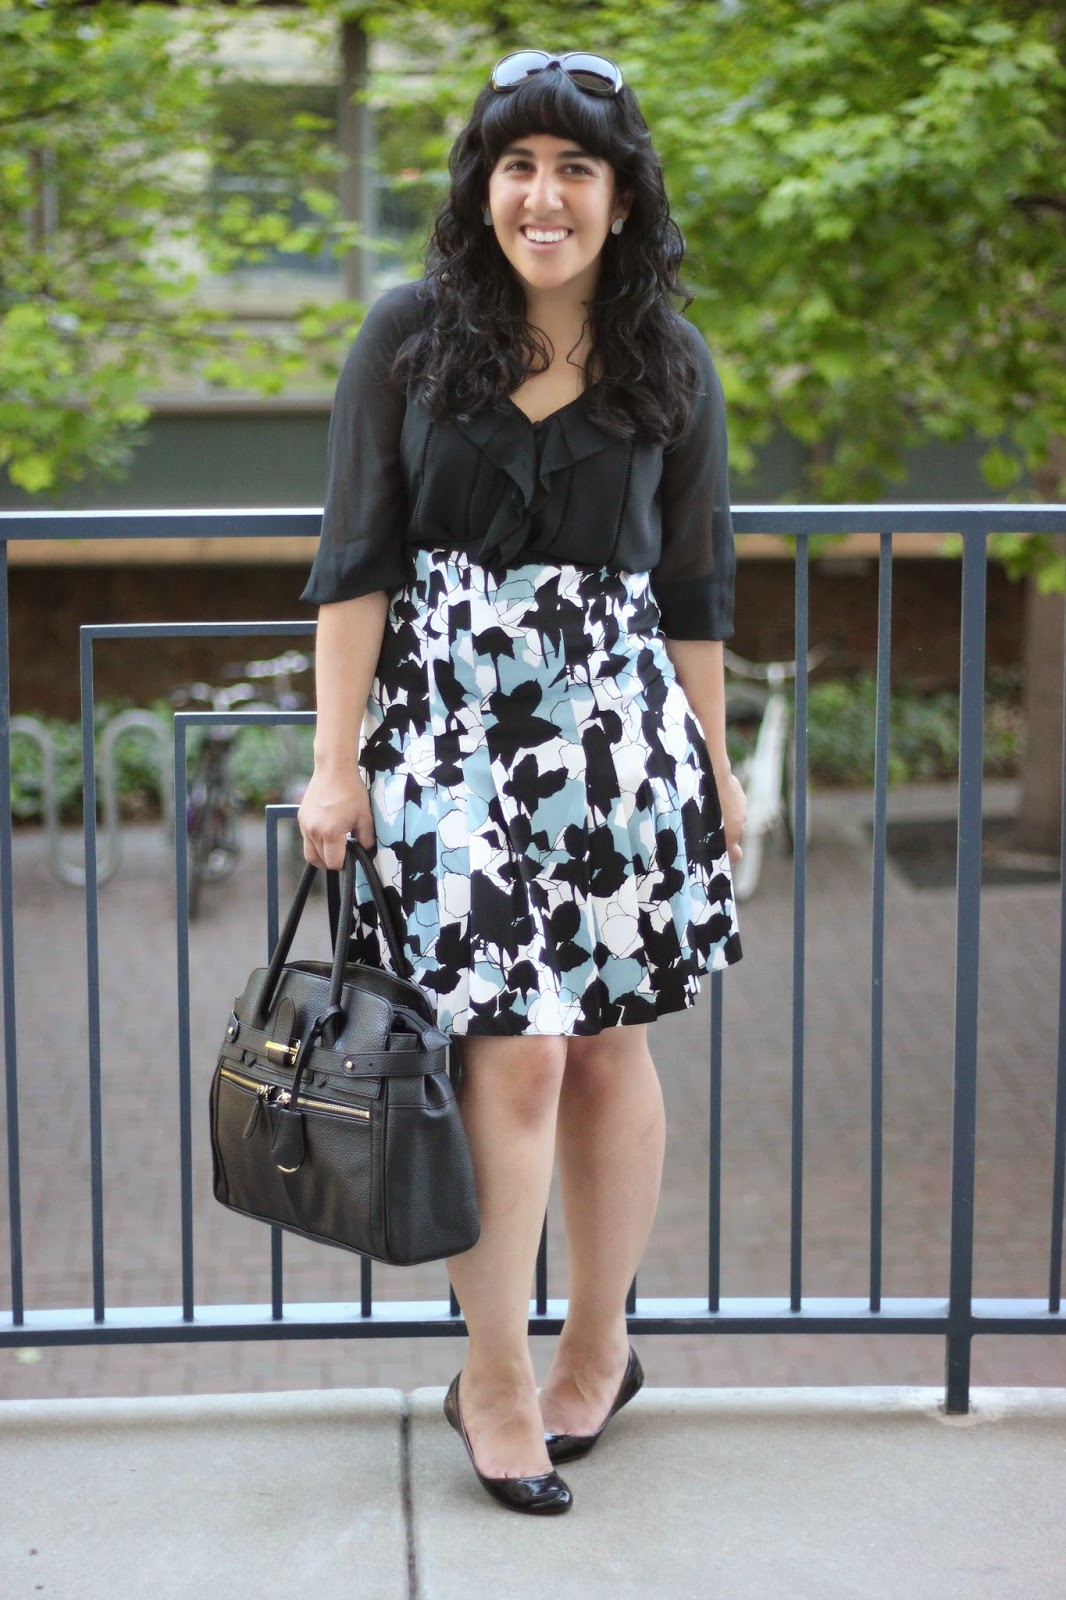 DVF Top and Floral Skirt